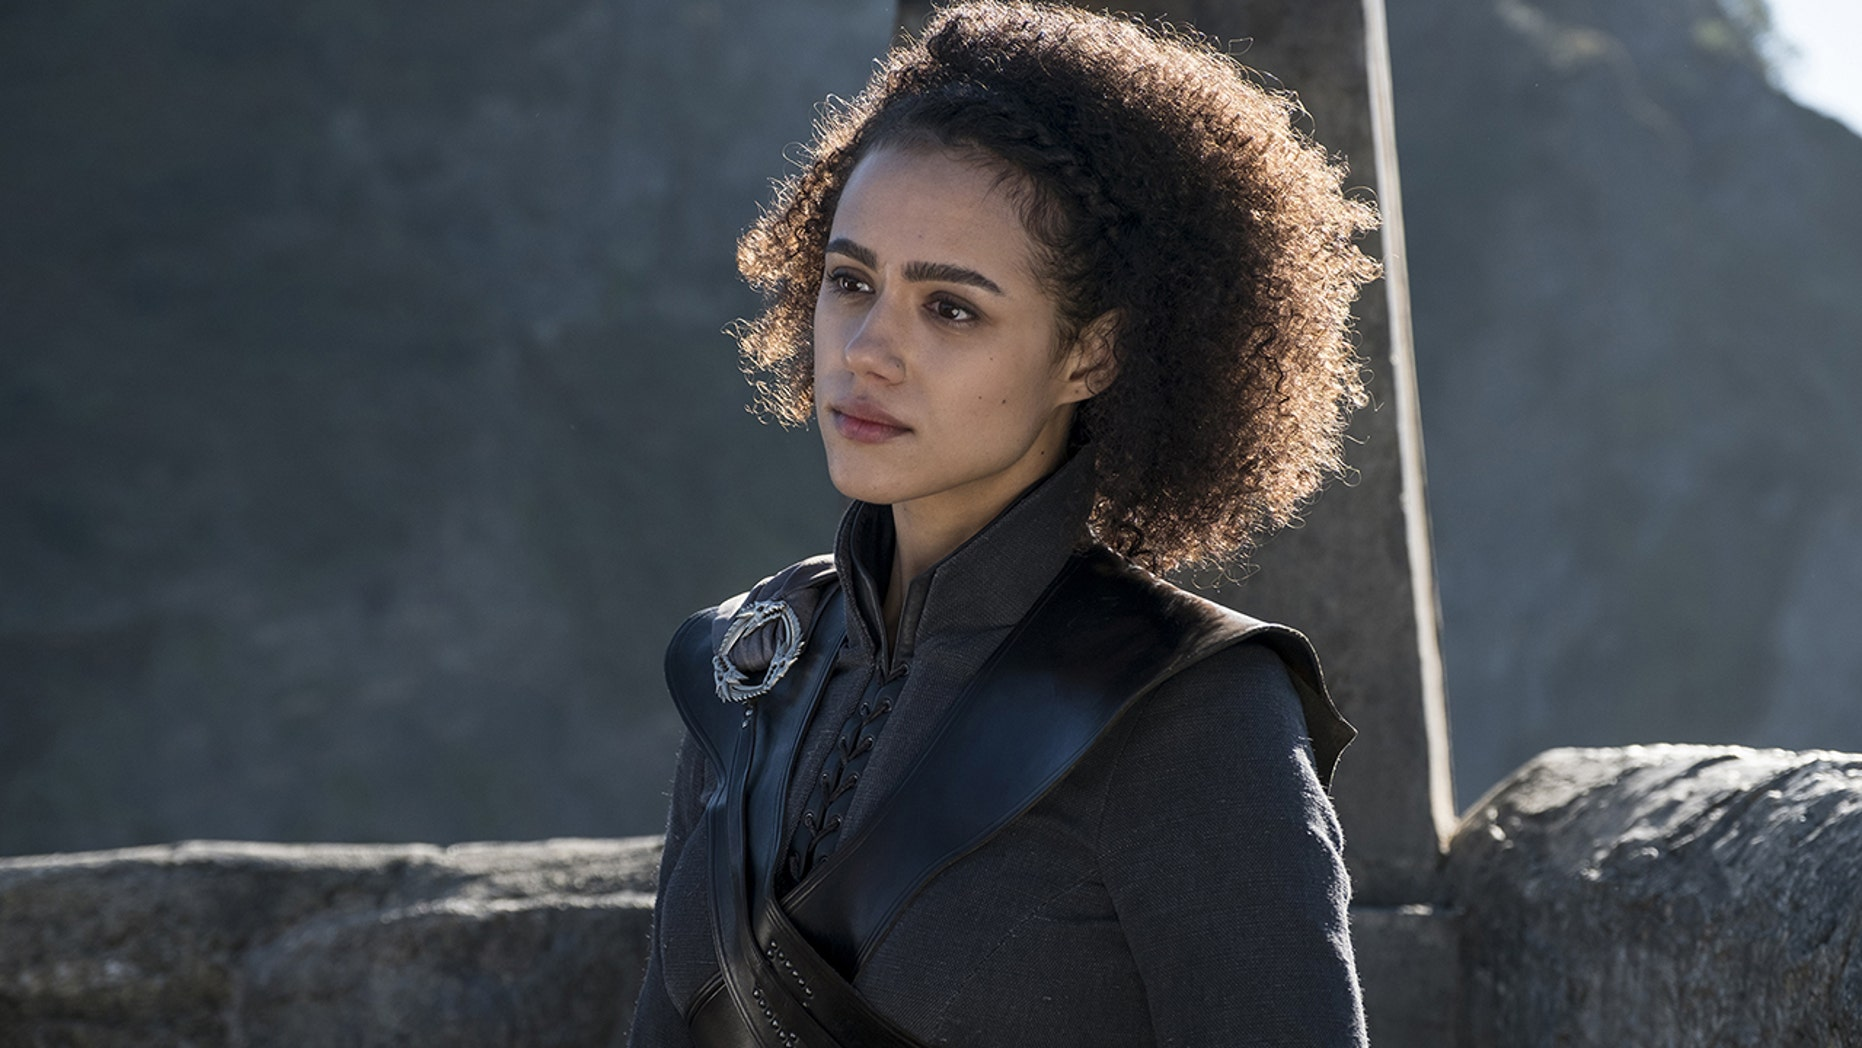 'Game of Thrones' actress Nathalie Emmanuel teased a mind-blowing finale to the show.